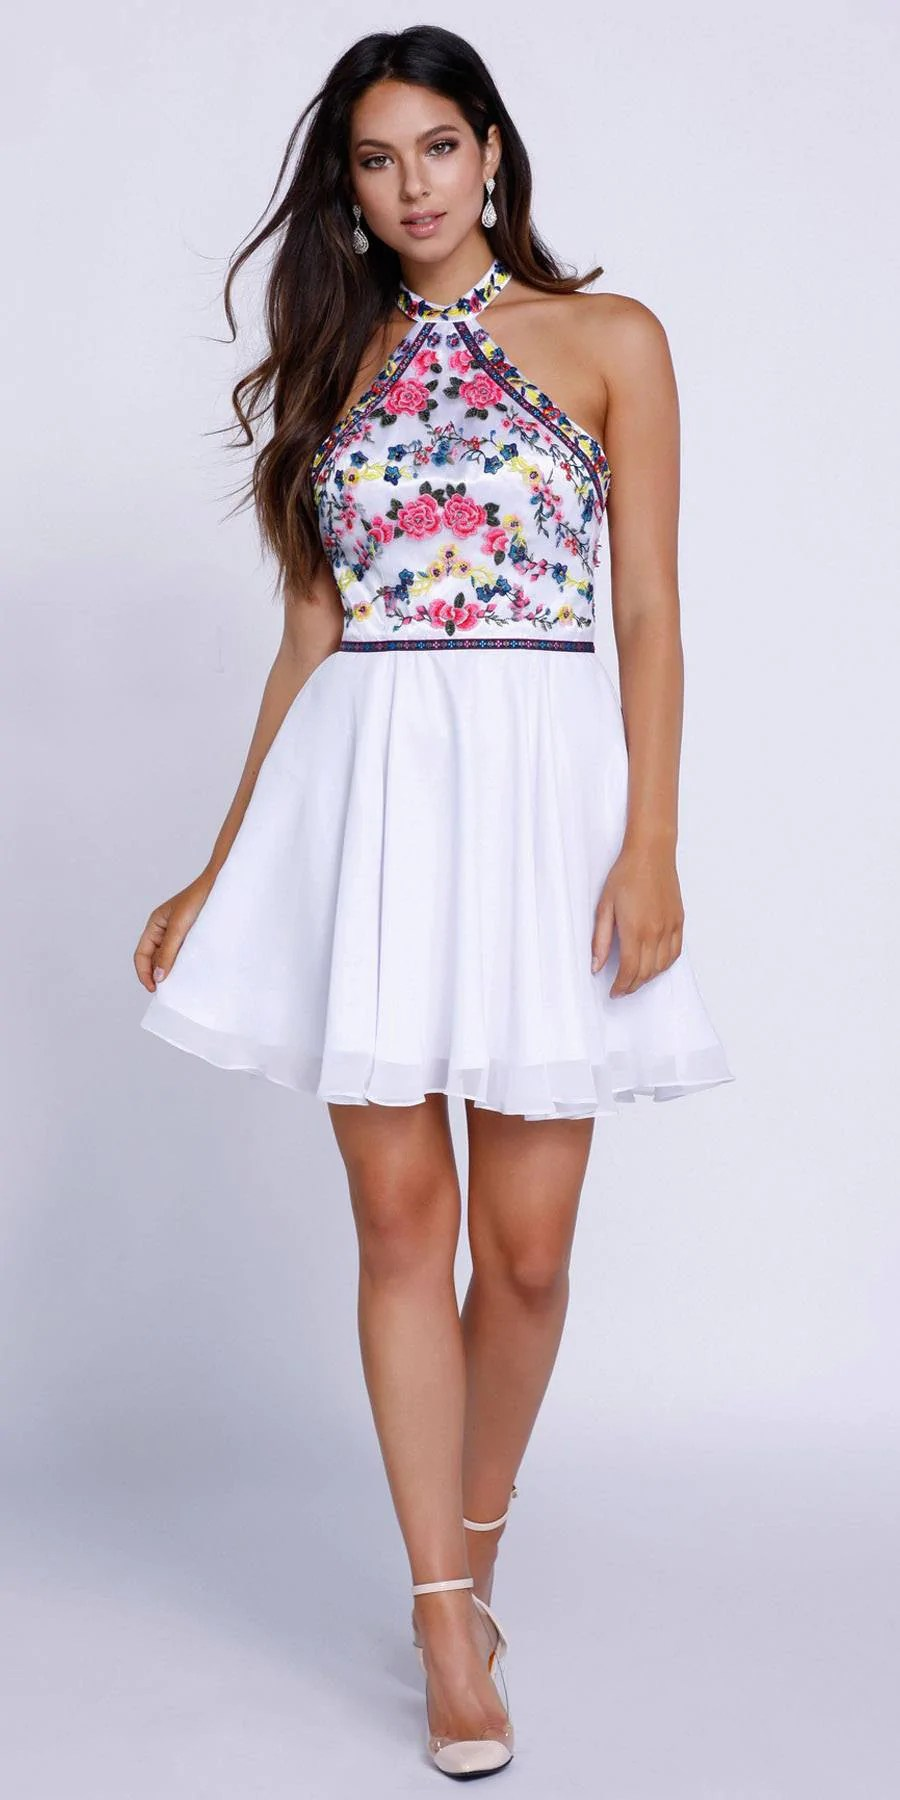 Floral Halter Top Homecoming Dresses